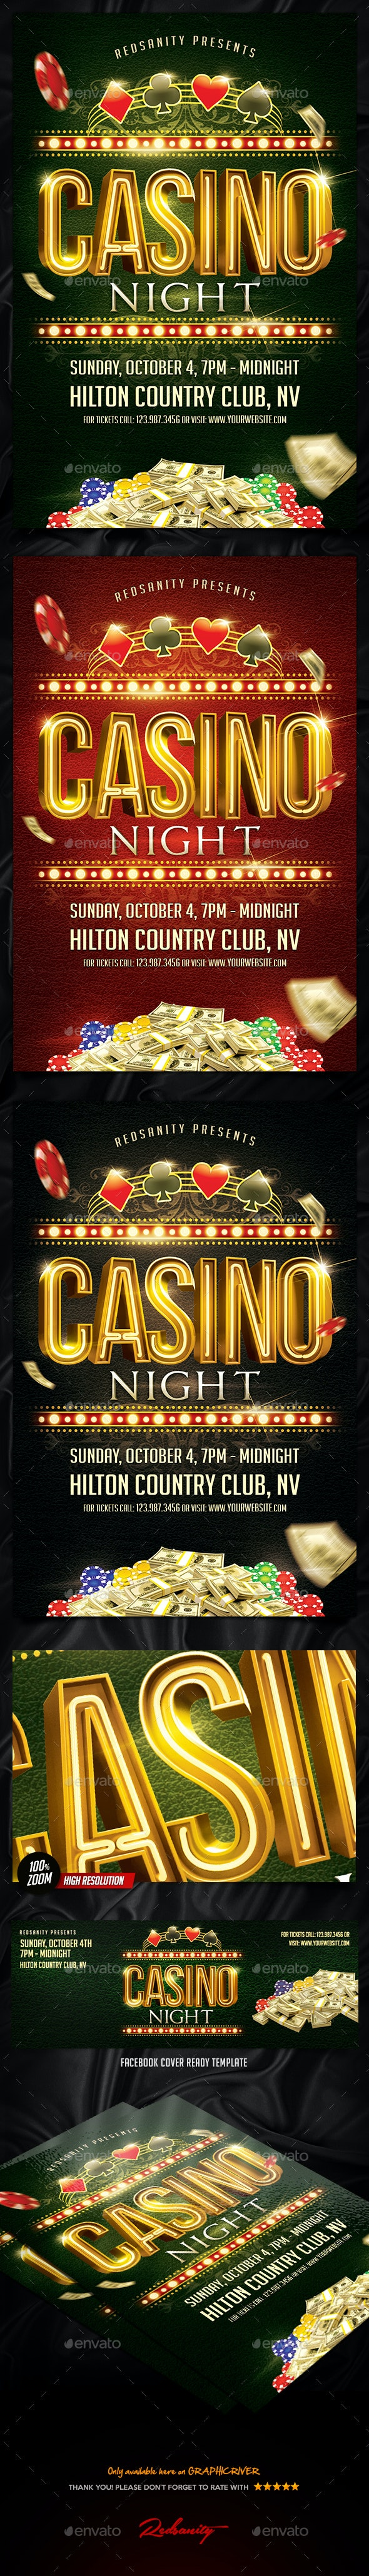 Casino Night Flyer Plus FB Cover - Events Flyers